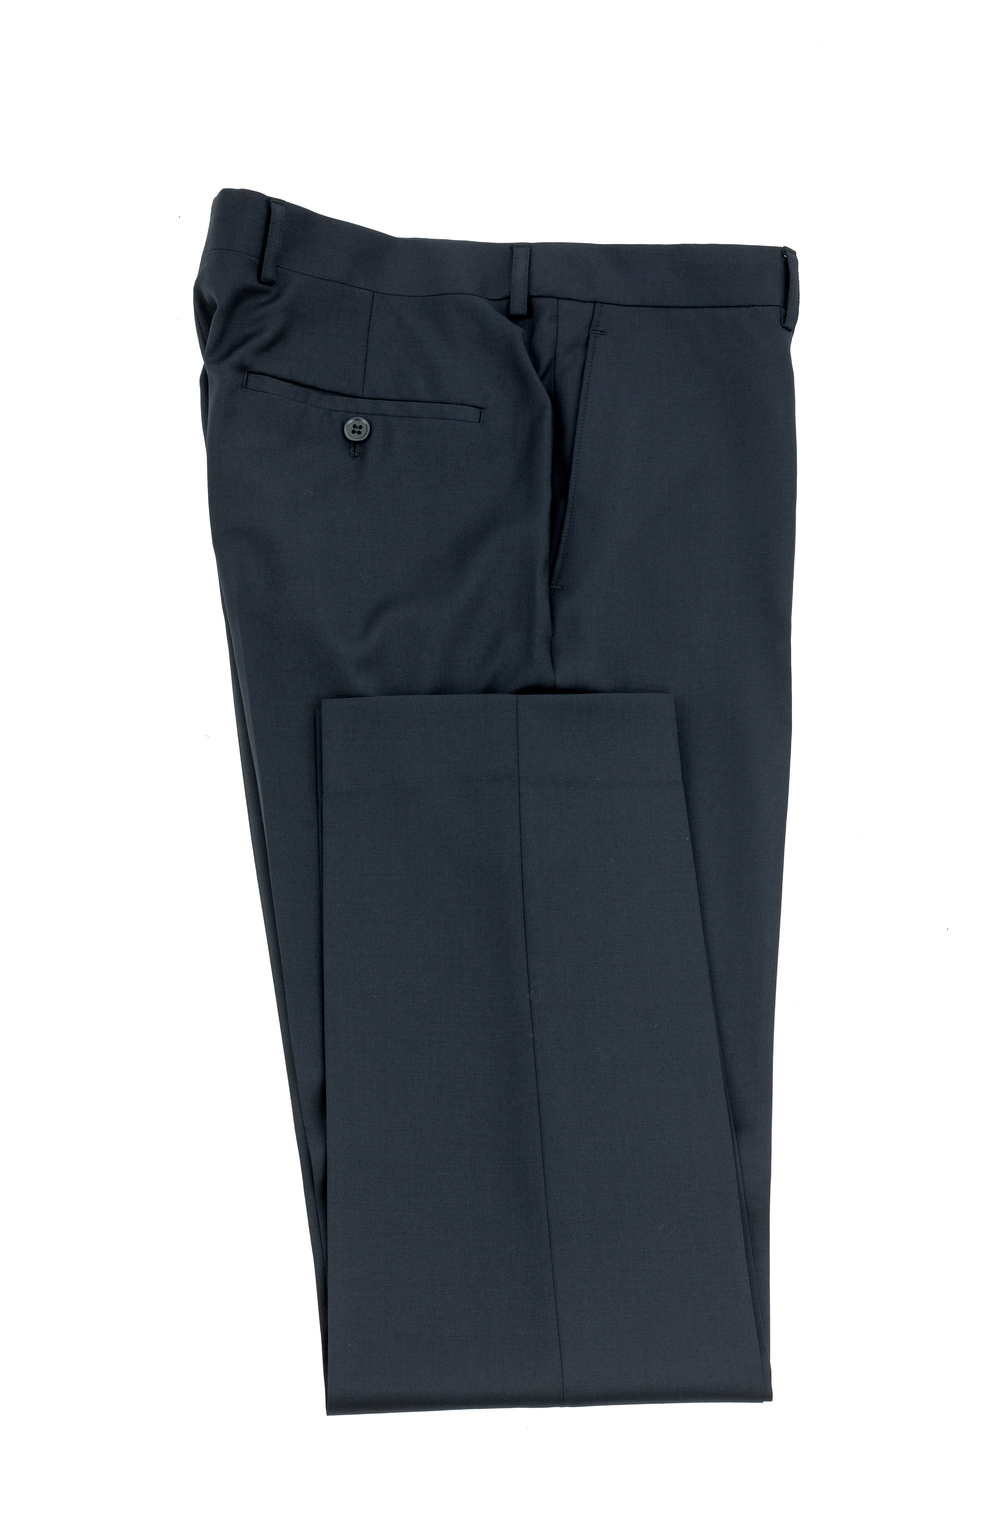 Studio Italia Icon New Navy Trouser